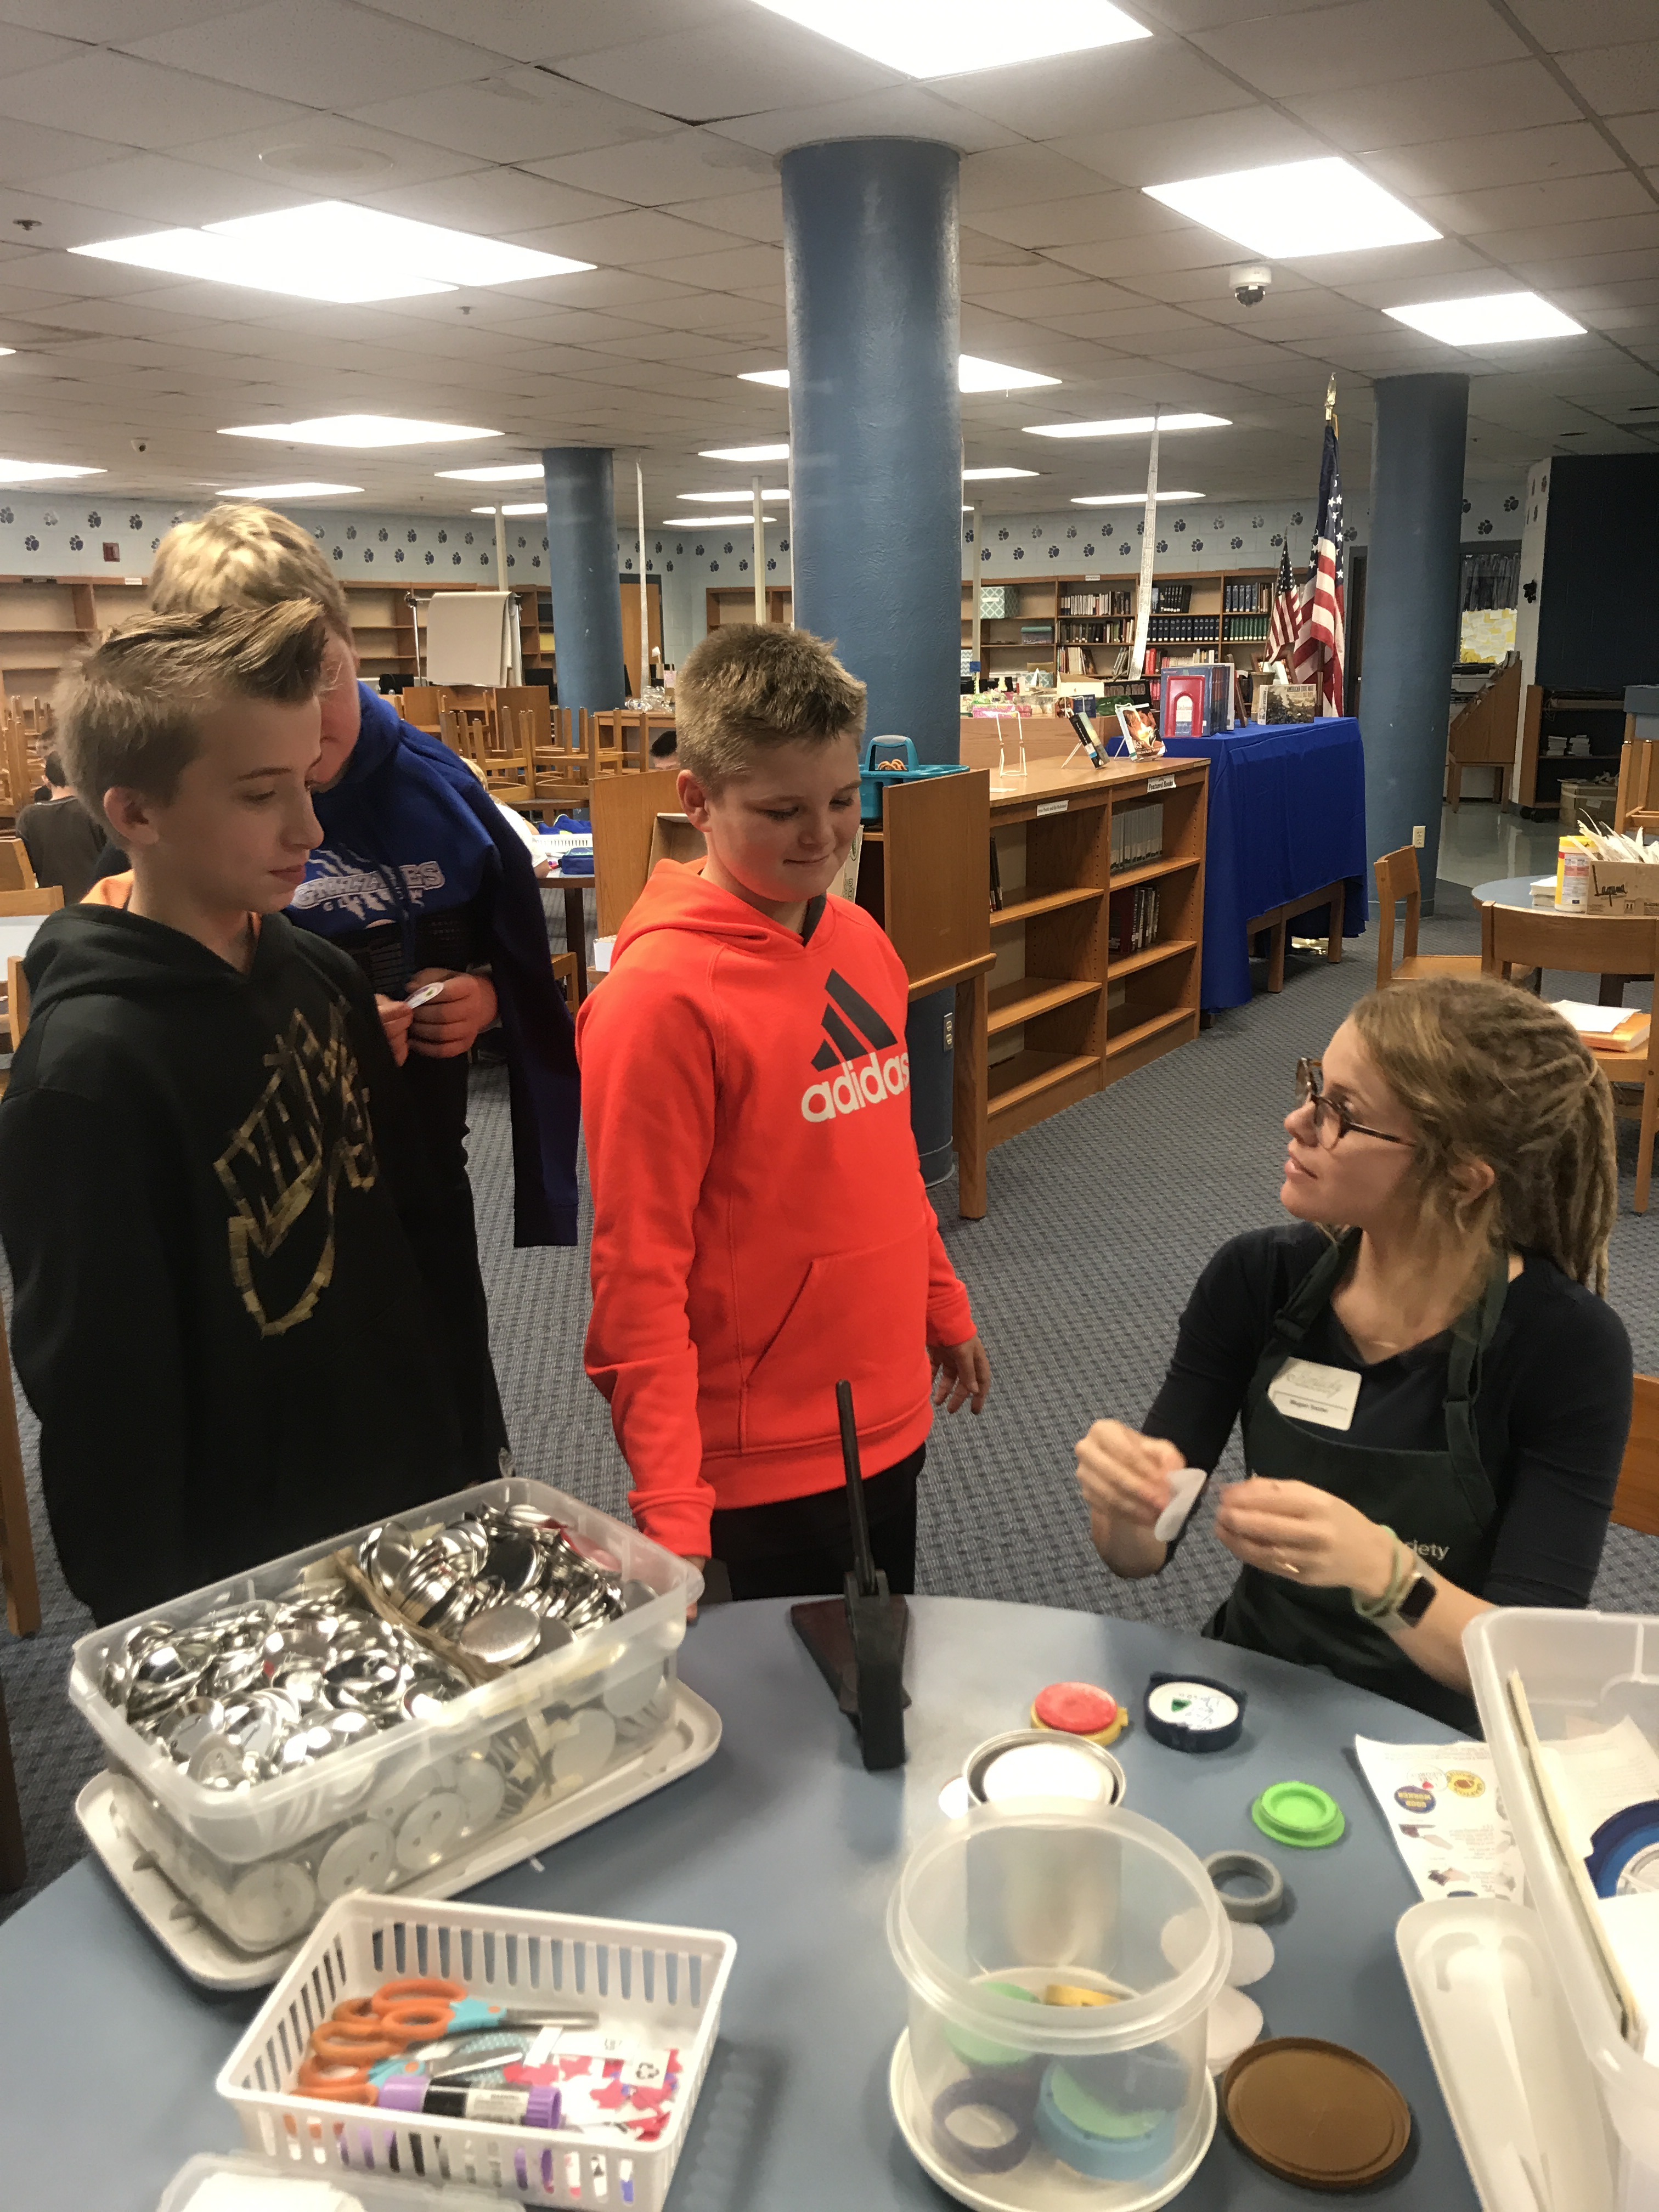 On Thursday, November 16th, AES and CCMS students in the Gifted & Talented Program participated in the History smArts Outreach Program.